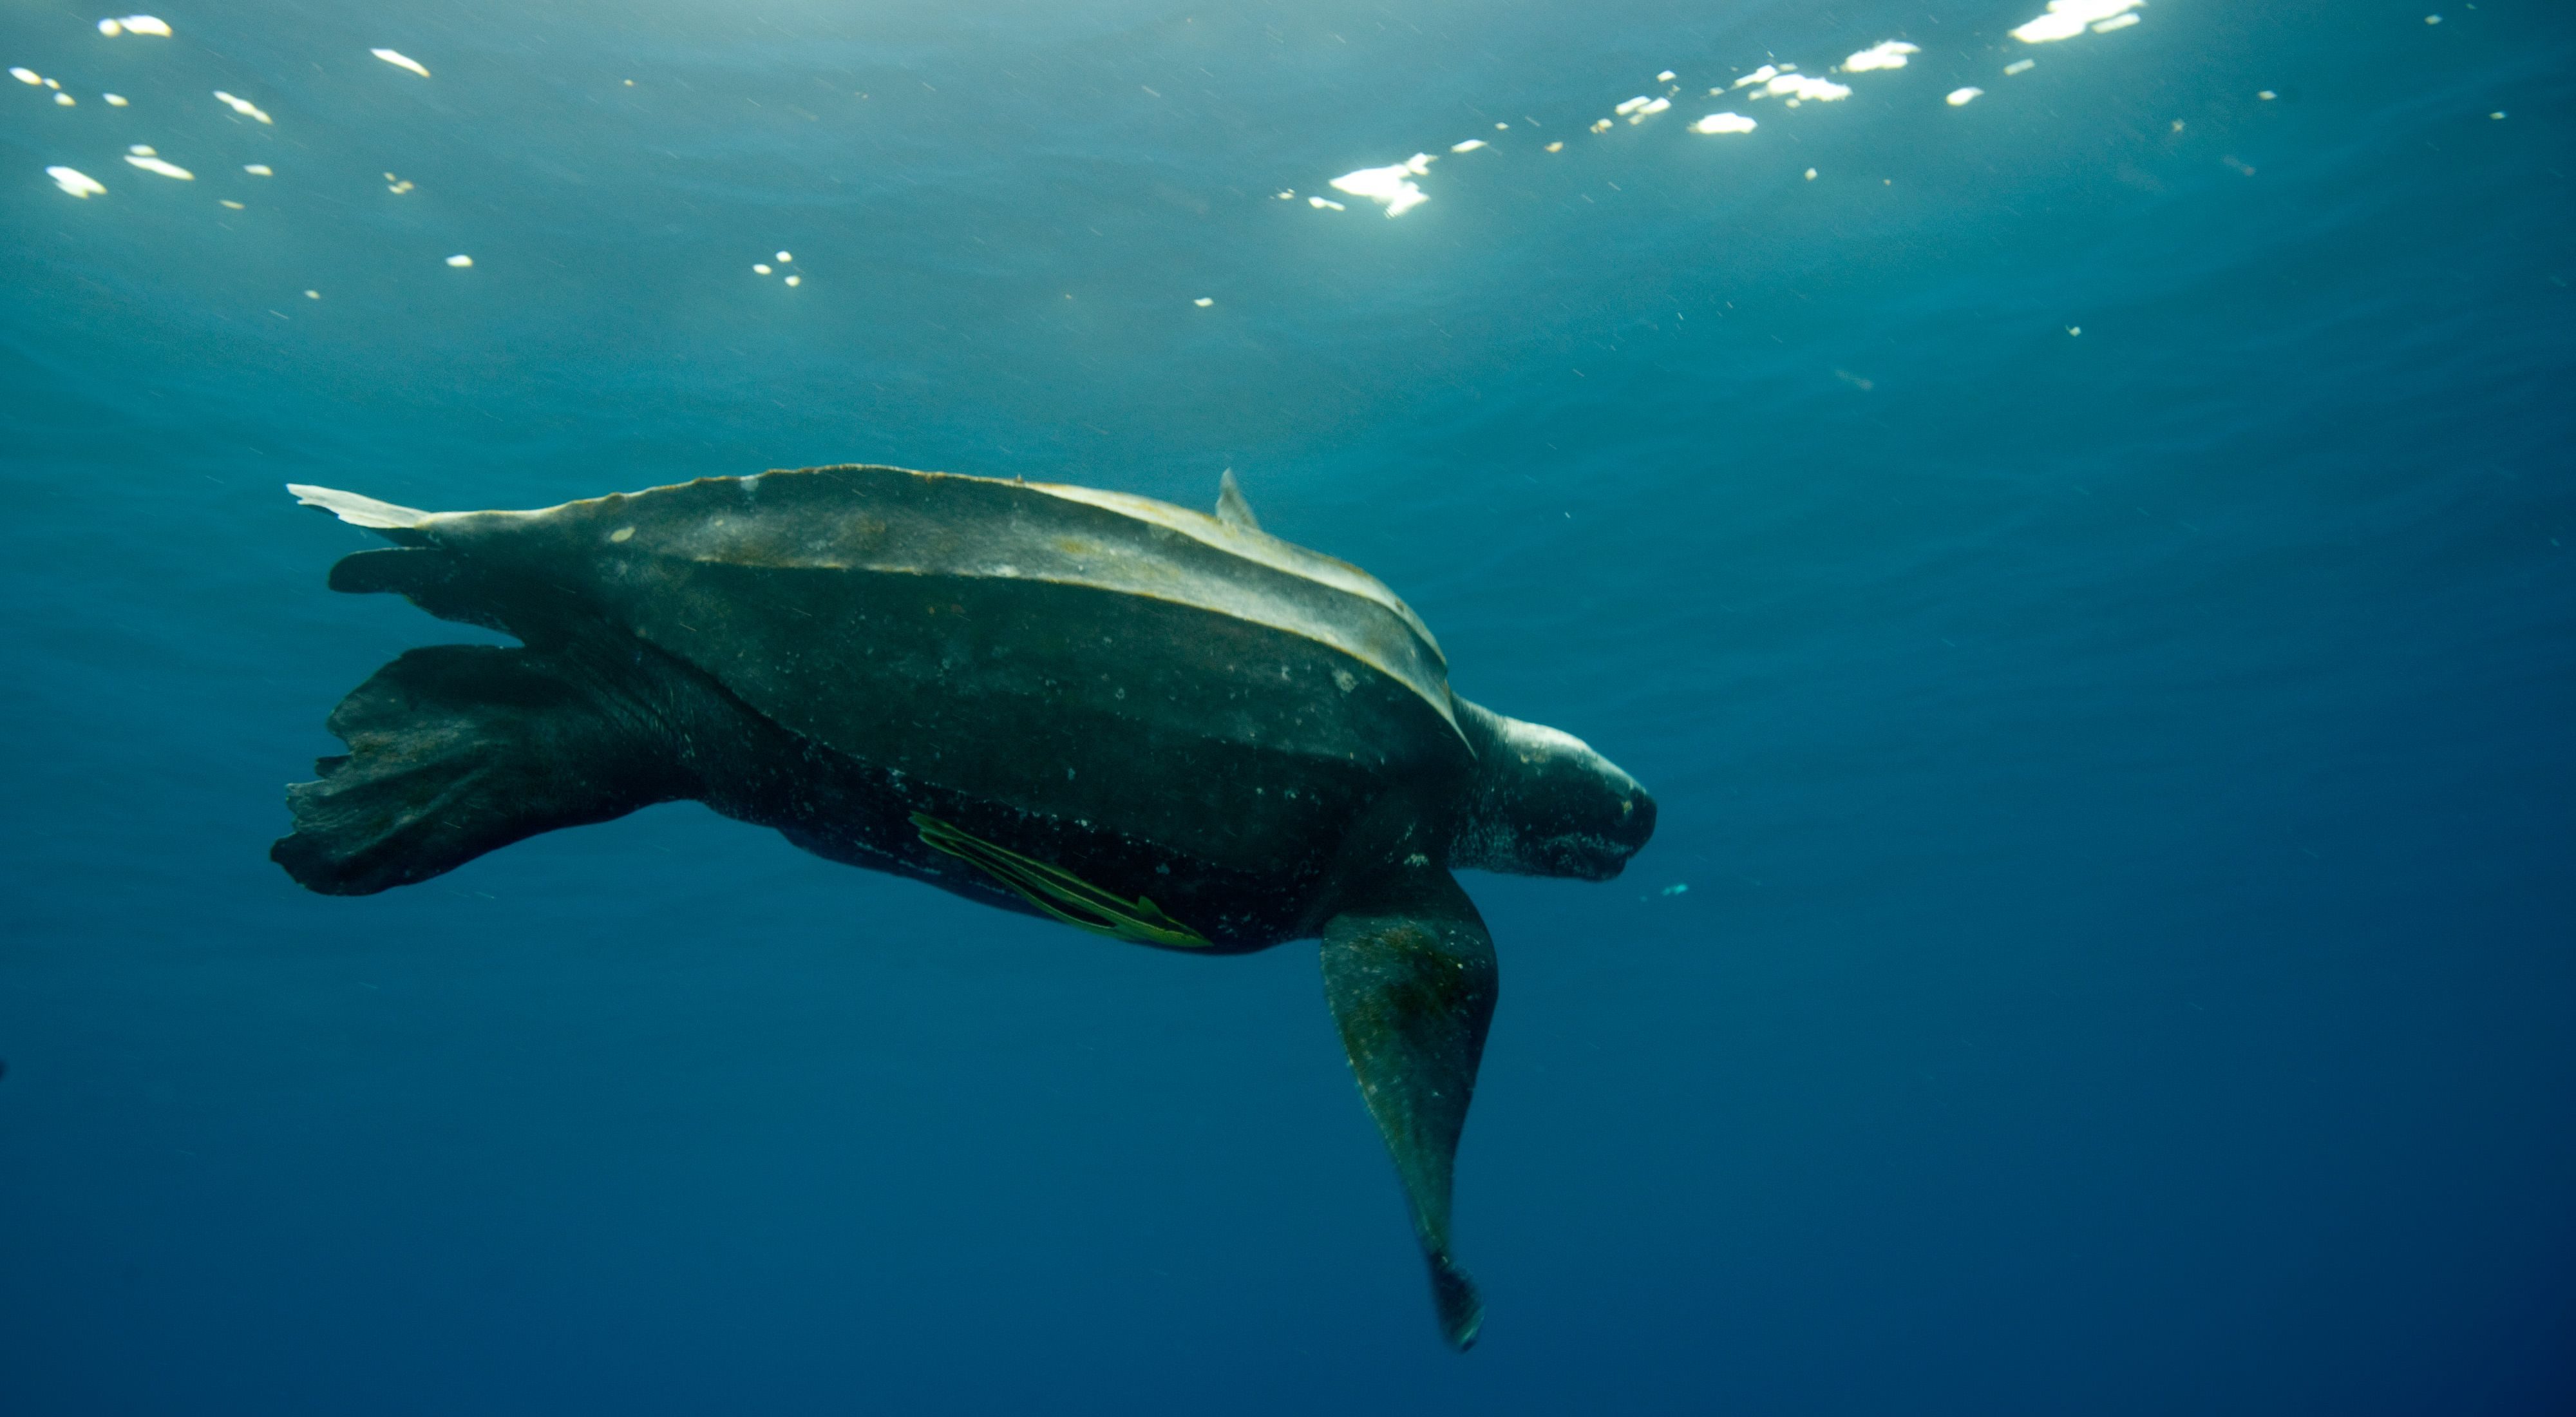 underwater view of a sea turtle swimming near the surface